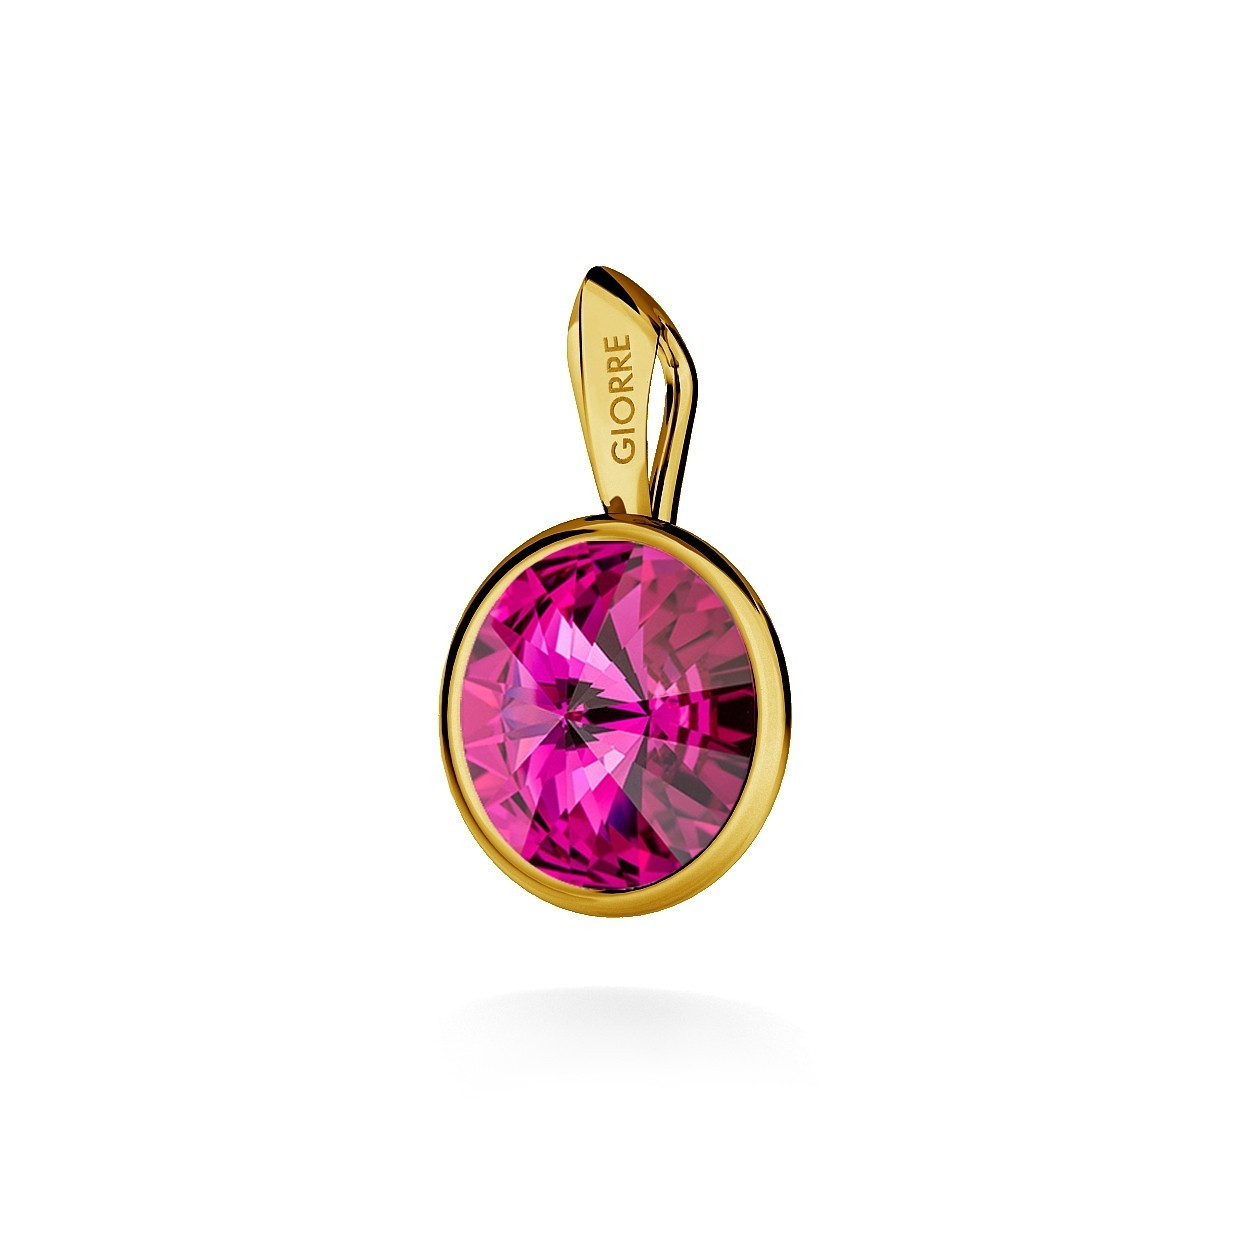 RIVOLI PENDANT, SWAROVSKI 1122 MM 10, STERLING SILVER (925) RHODIUM OR GOLD PLATED